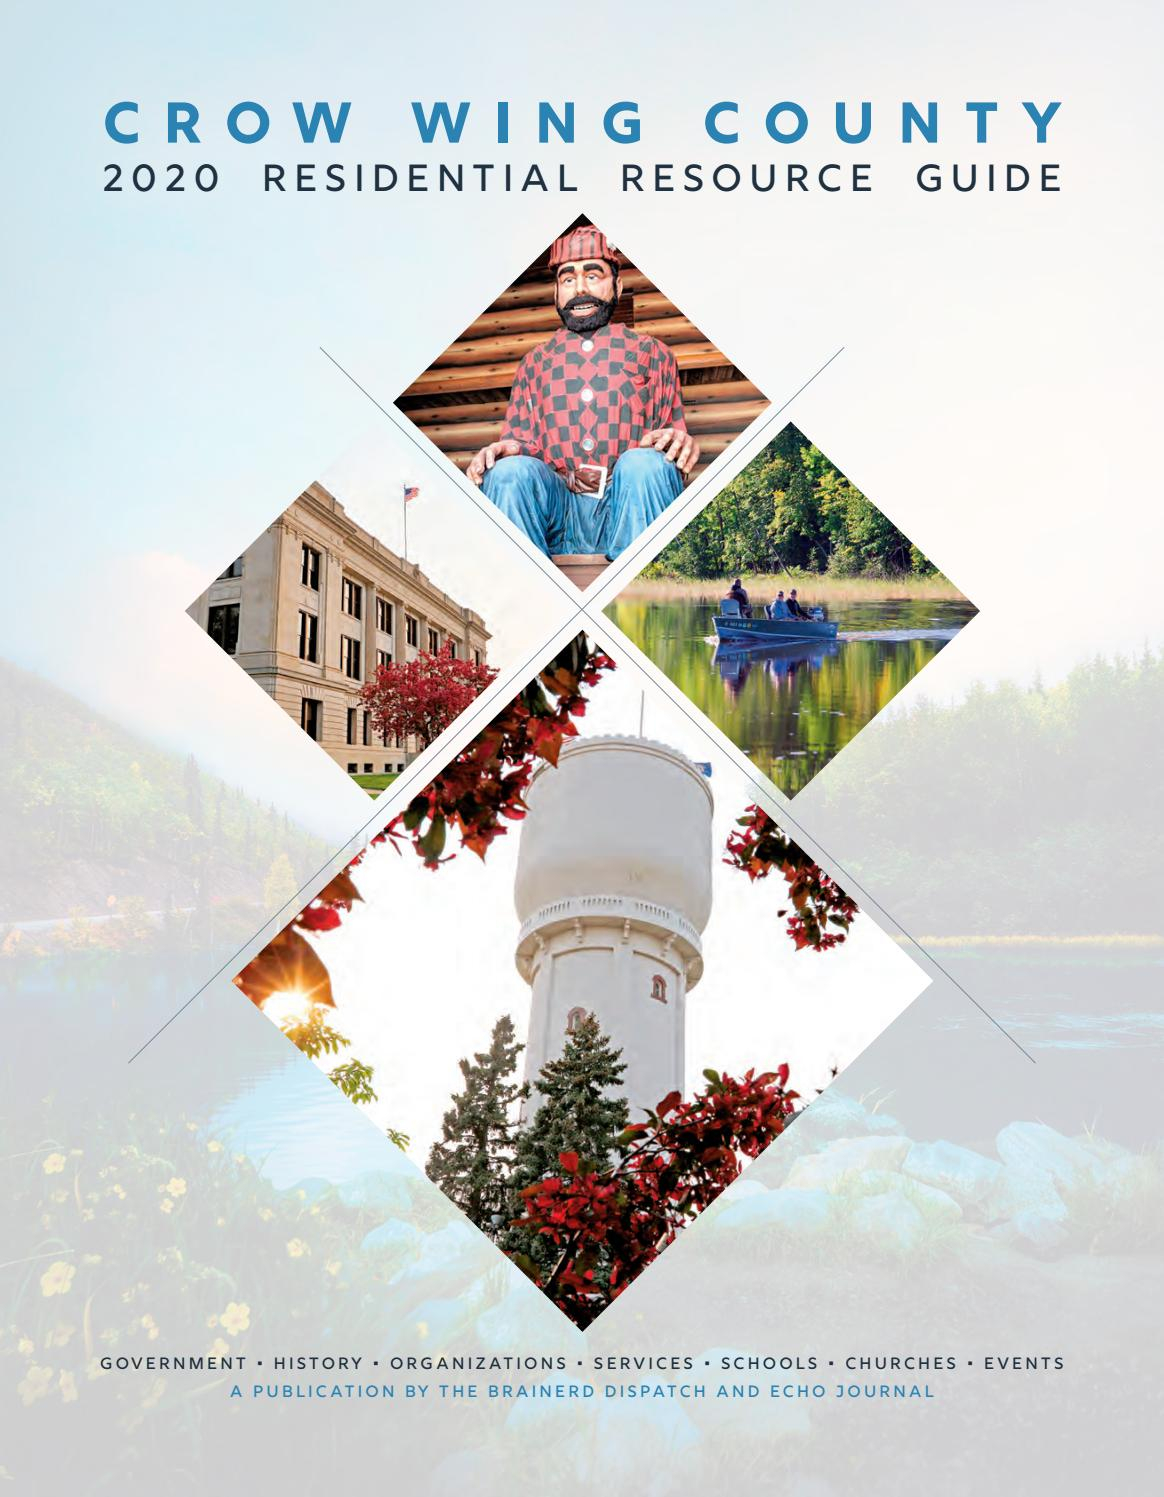 2020 Crow Wing County Residential Resource Guidebrainerd With Crow Wing County Court Calendar